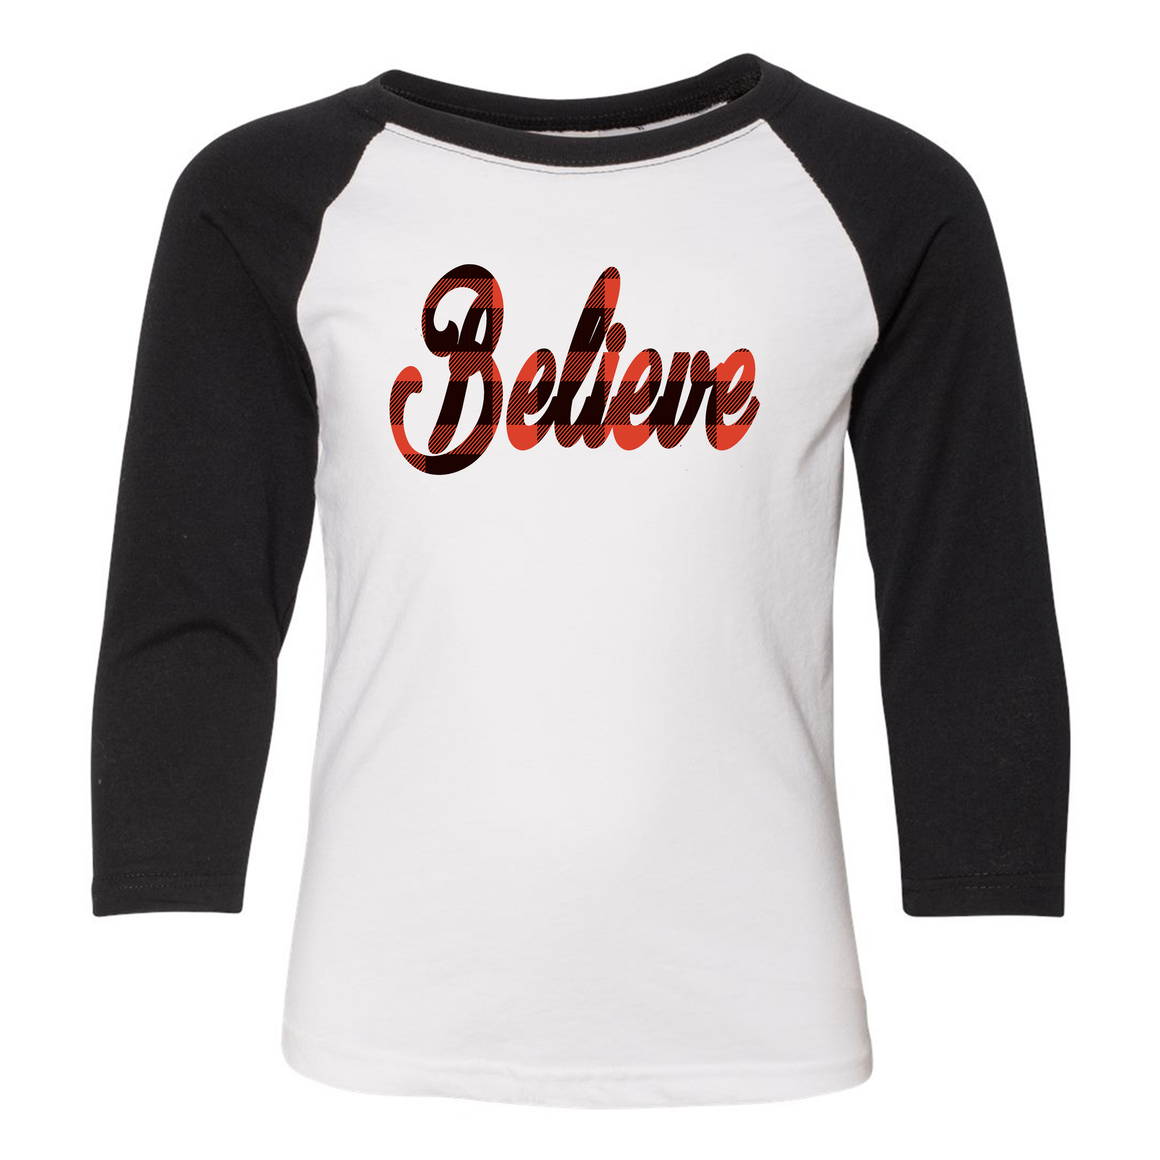 Believe 3/4 Sleeve Raglan: Infant, Toddler, Youth